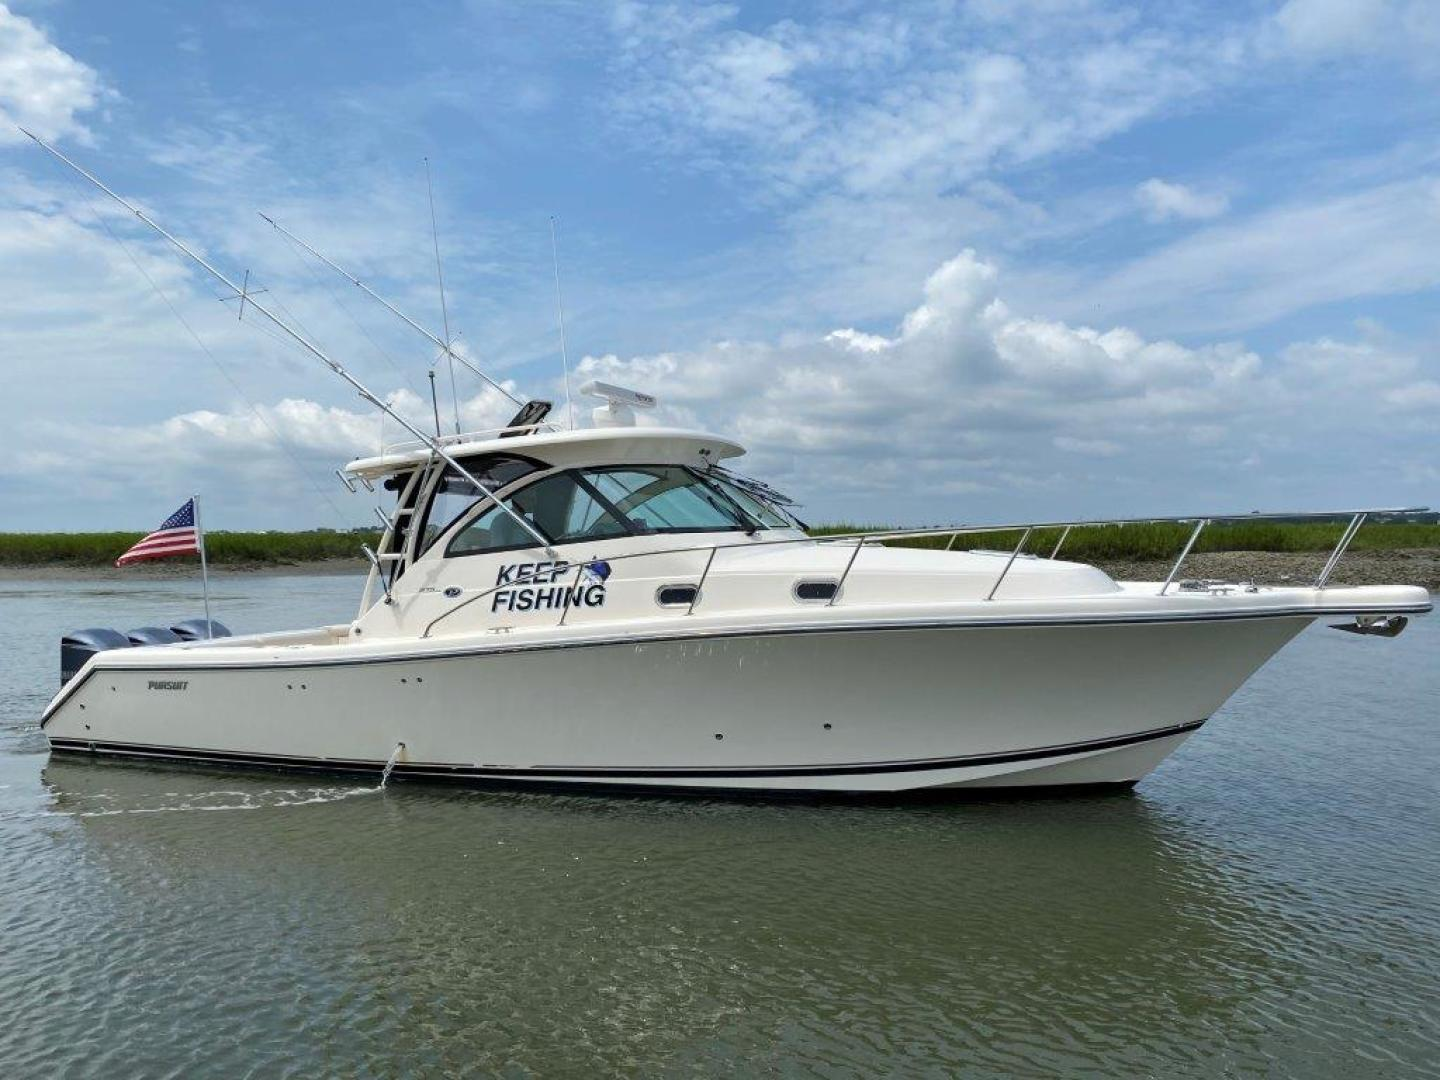 37' Pursuit 2011 OS 375 Offshore KEEP FISHING